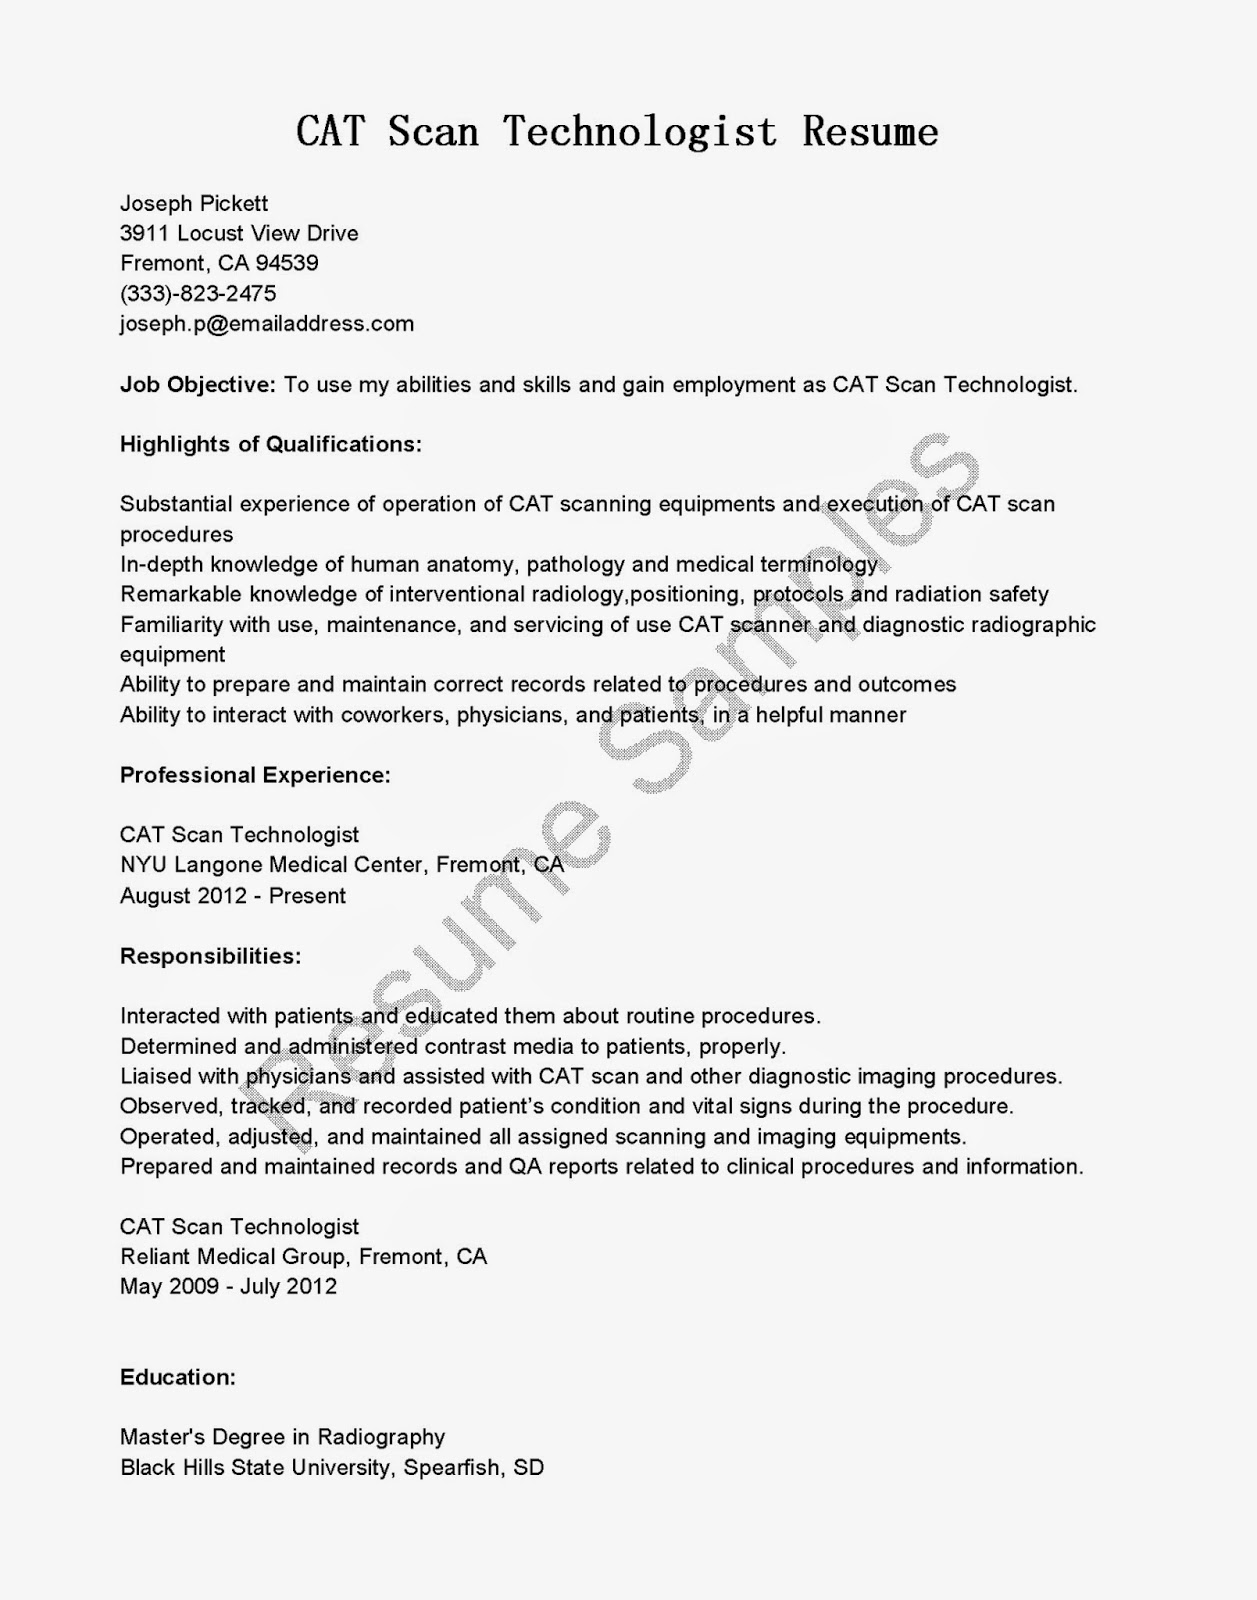 Ct Tech Resume Resume Samples Cat Scan Technologist Resume Sample